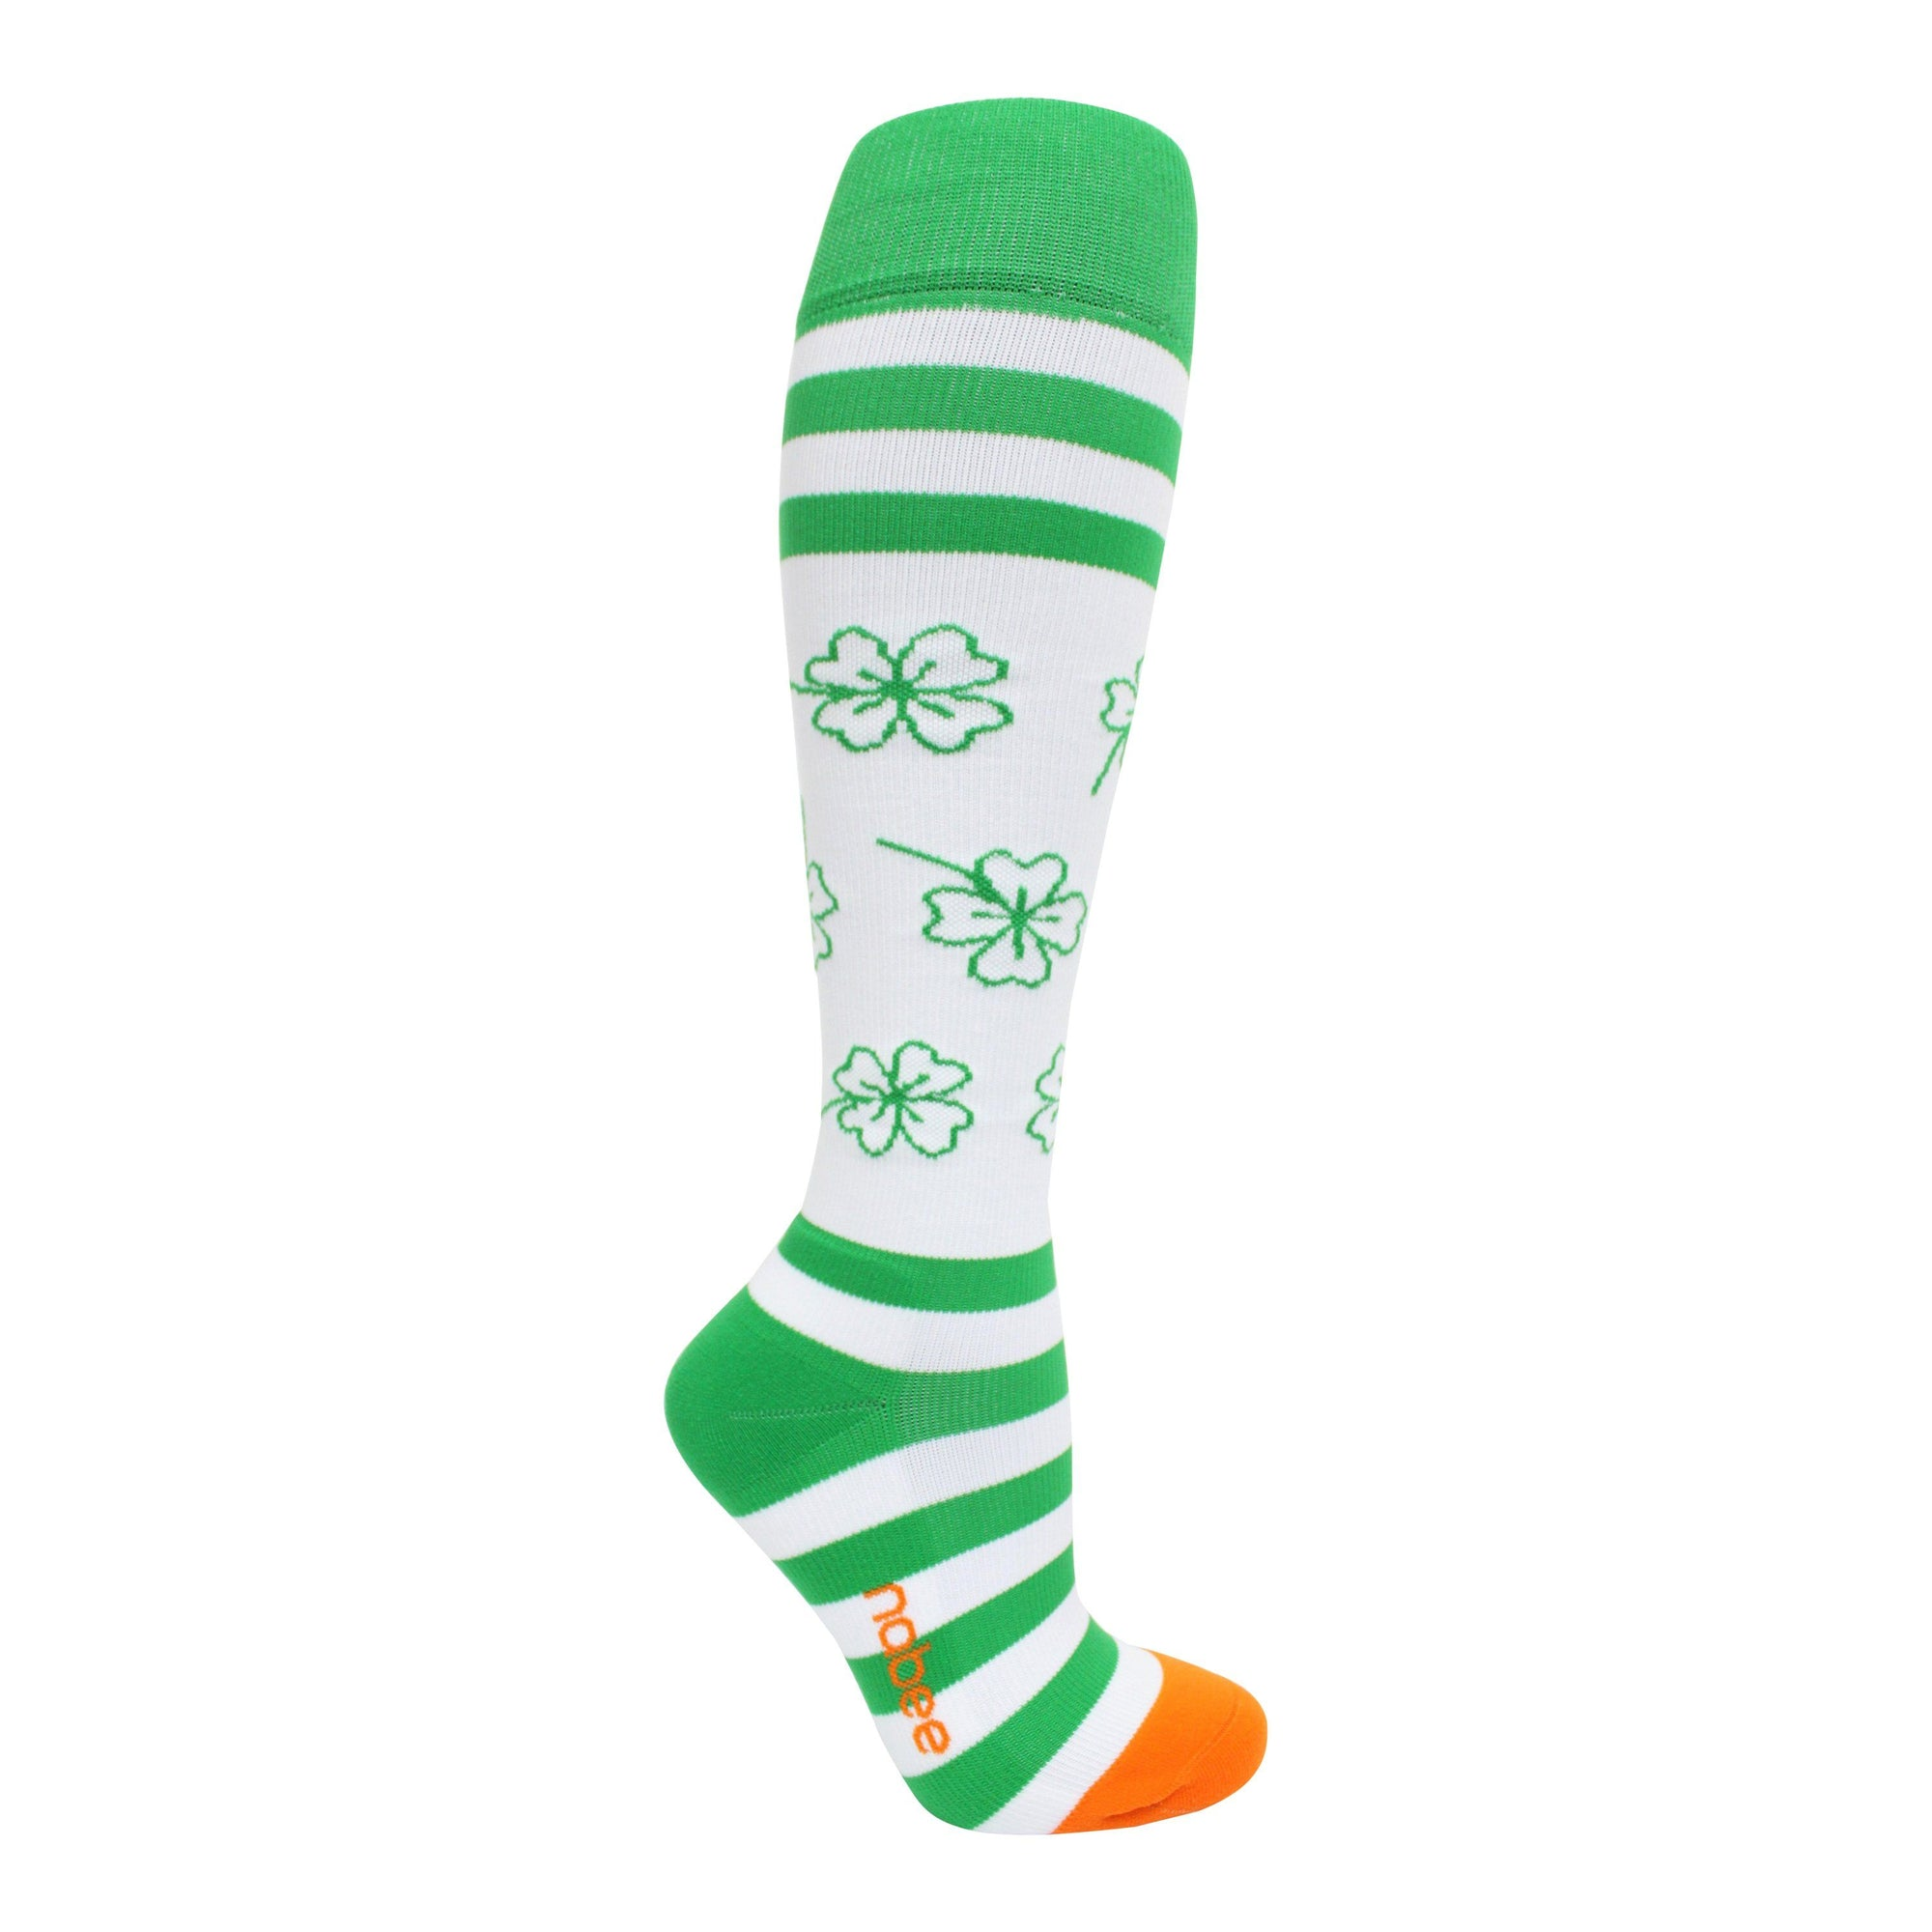 Compression Socks - Shamrock (20-30mmHg)